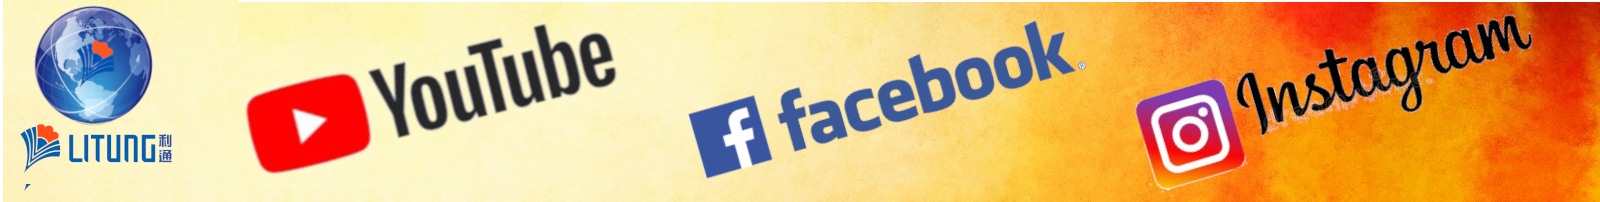 Banner Link to youtube facebook Insatrame 1600x200